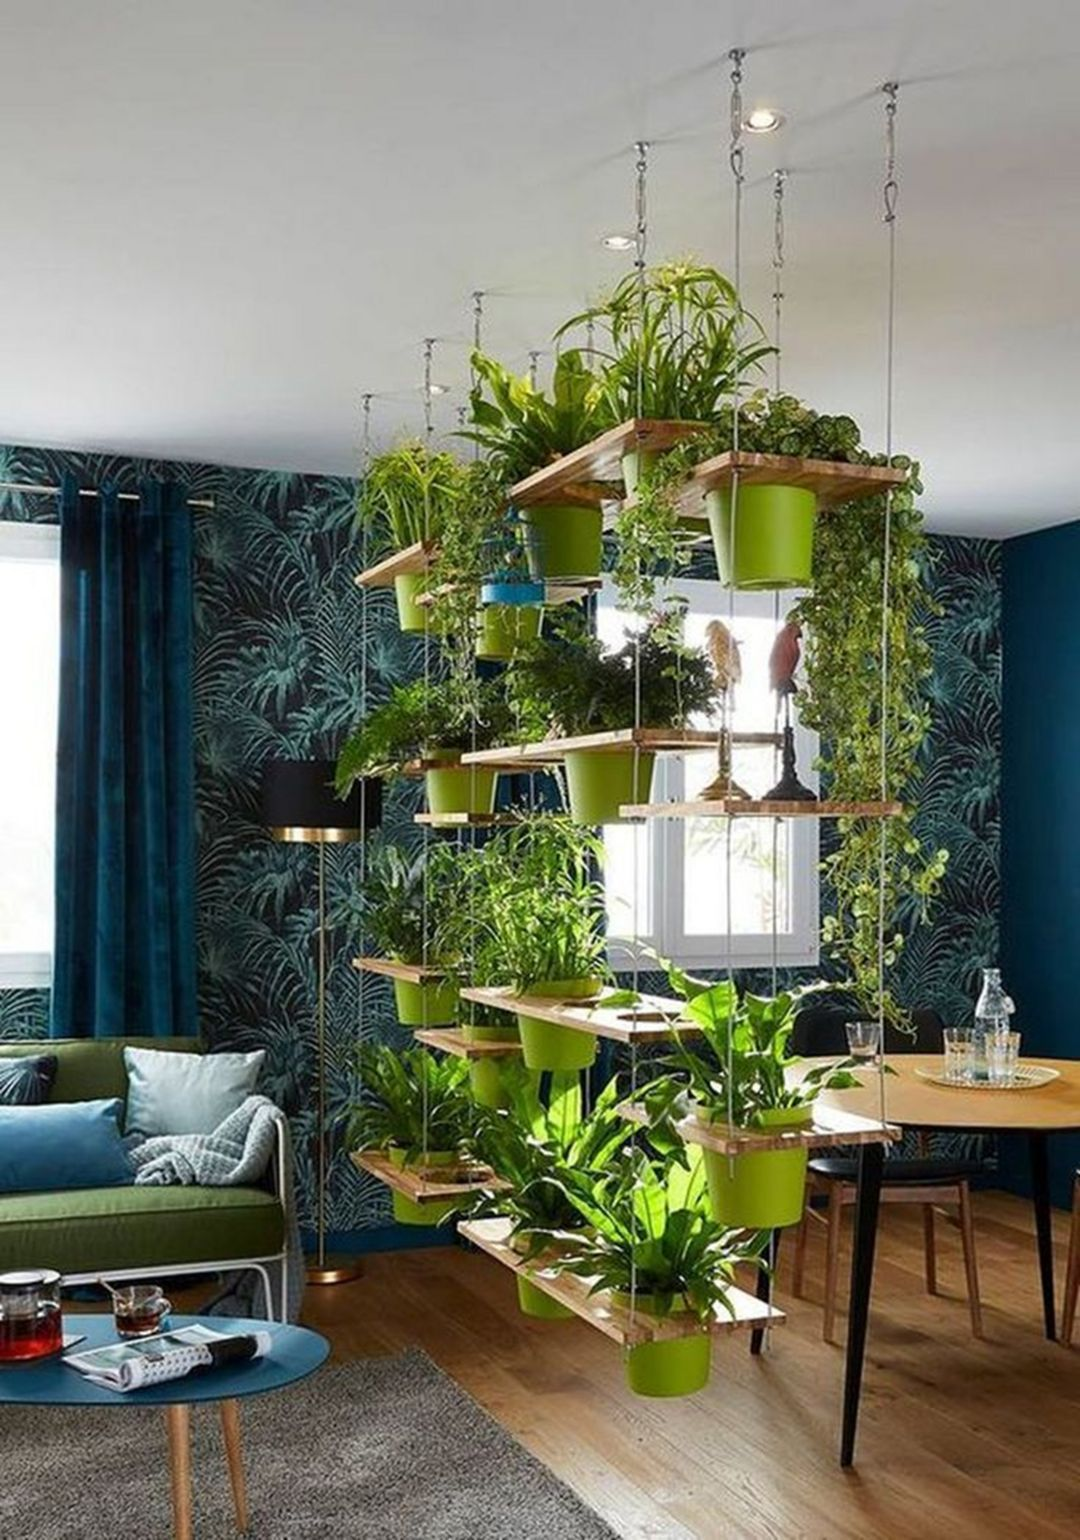 10 Beautiful Living Room Decorations With Inspiring Ornamental Plant Ideas Plant Decor Indoor Room With Plants Plant Decor